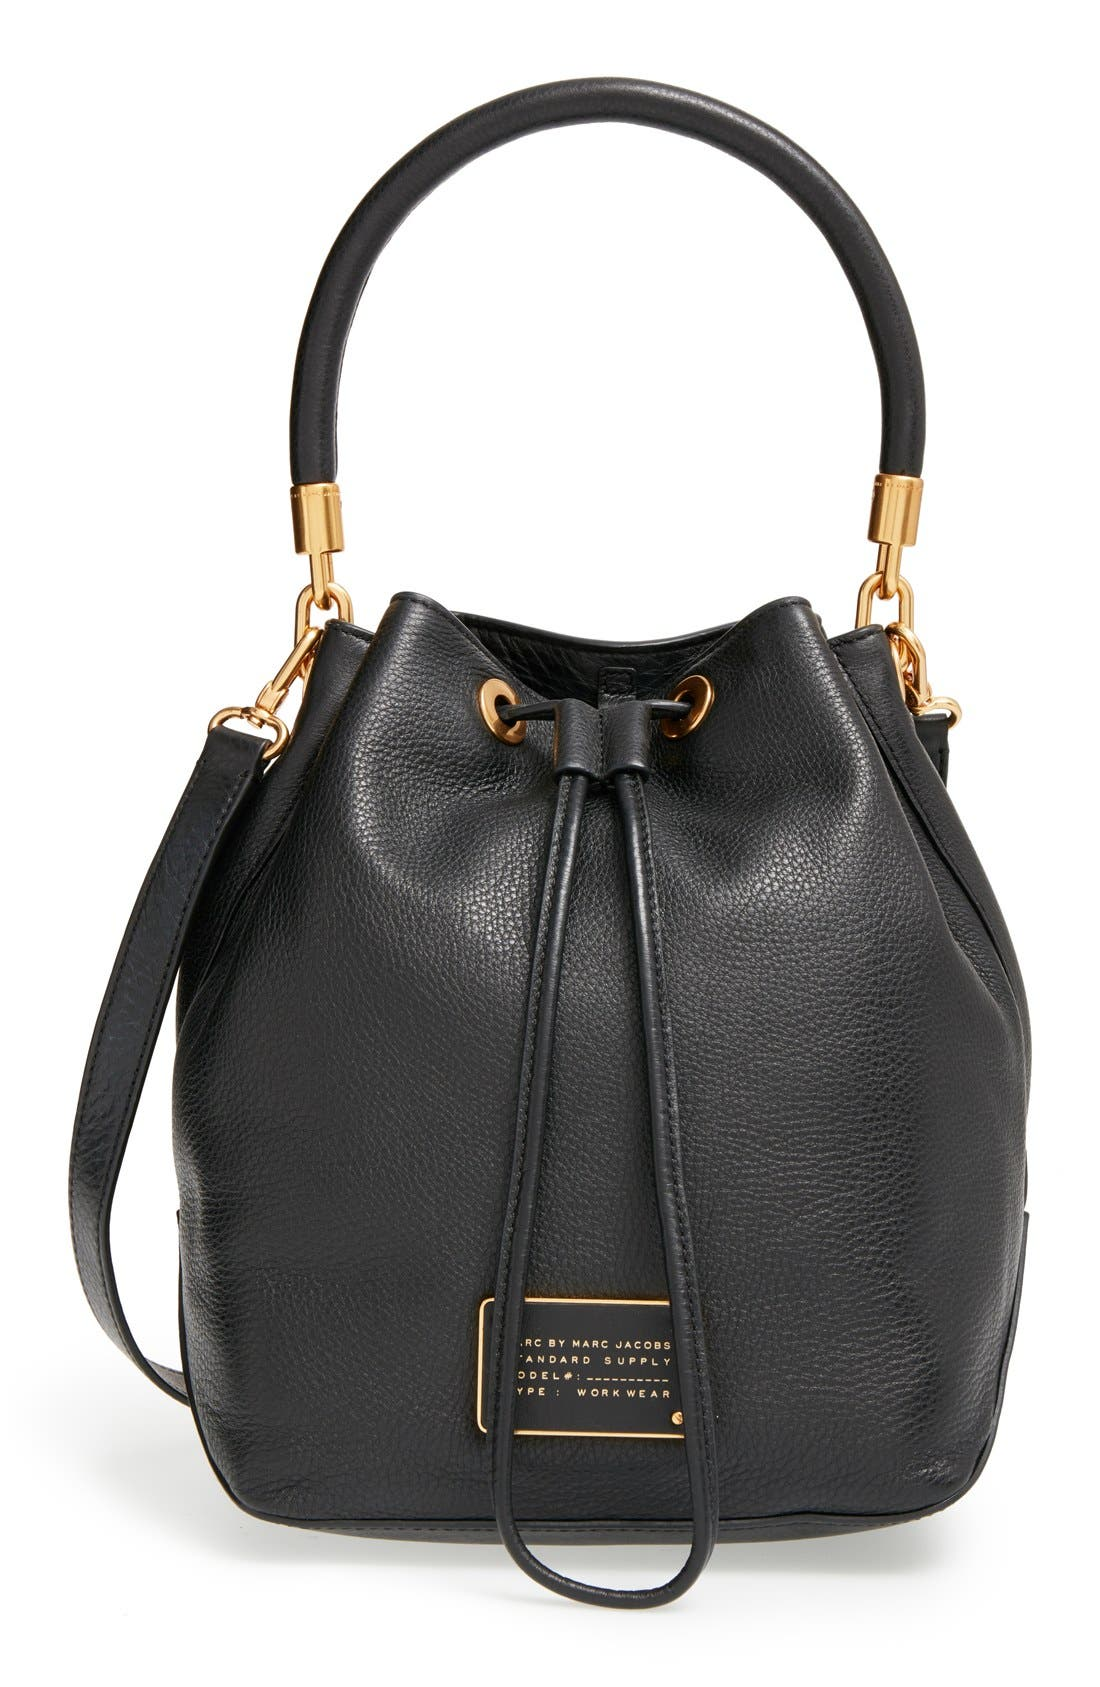 MARC BY MARC JACOBS 'Too Hot to Handle' Drawstring BucketBag, Main, color, 001